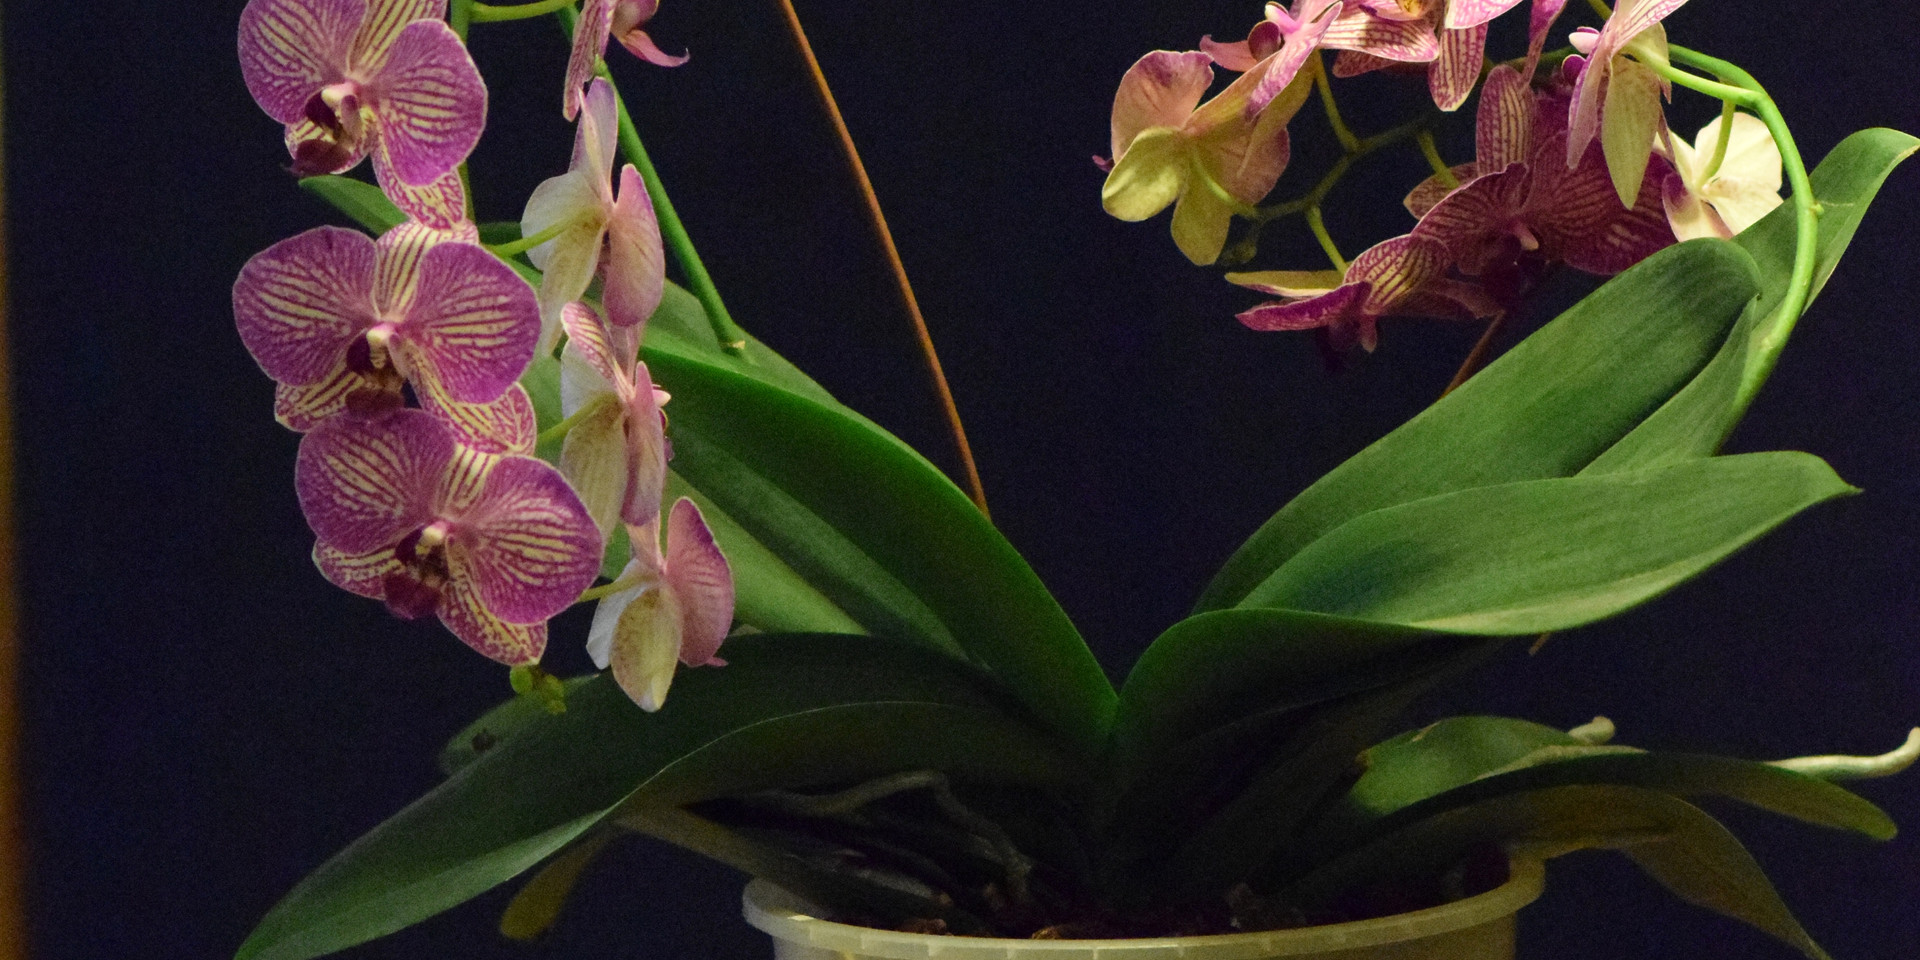 Orchids Love in Times of Corona